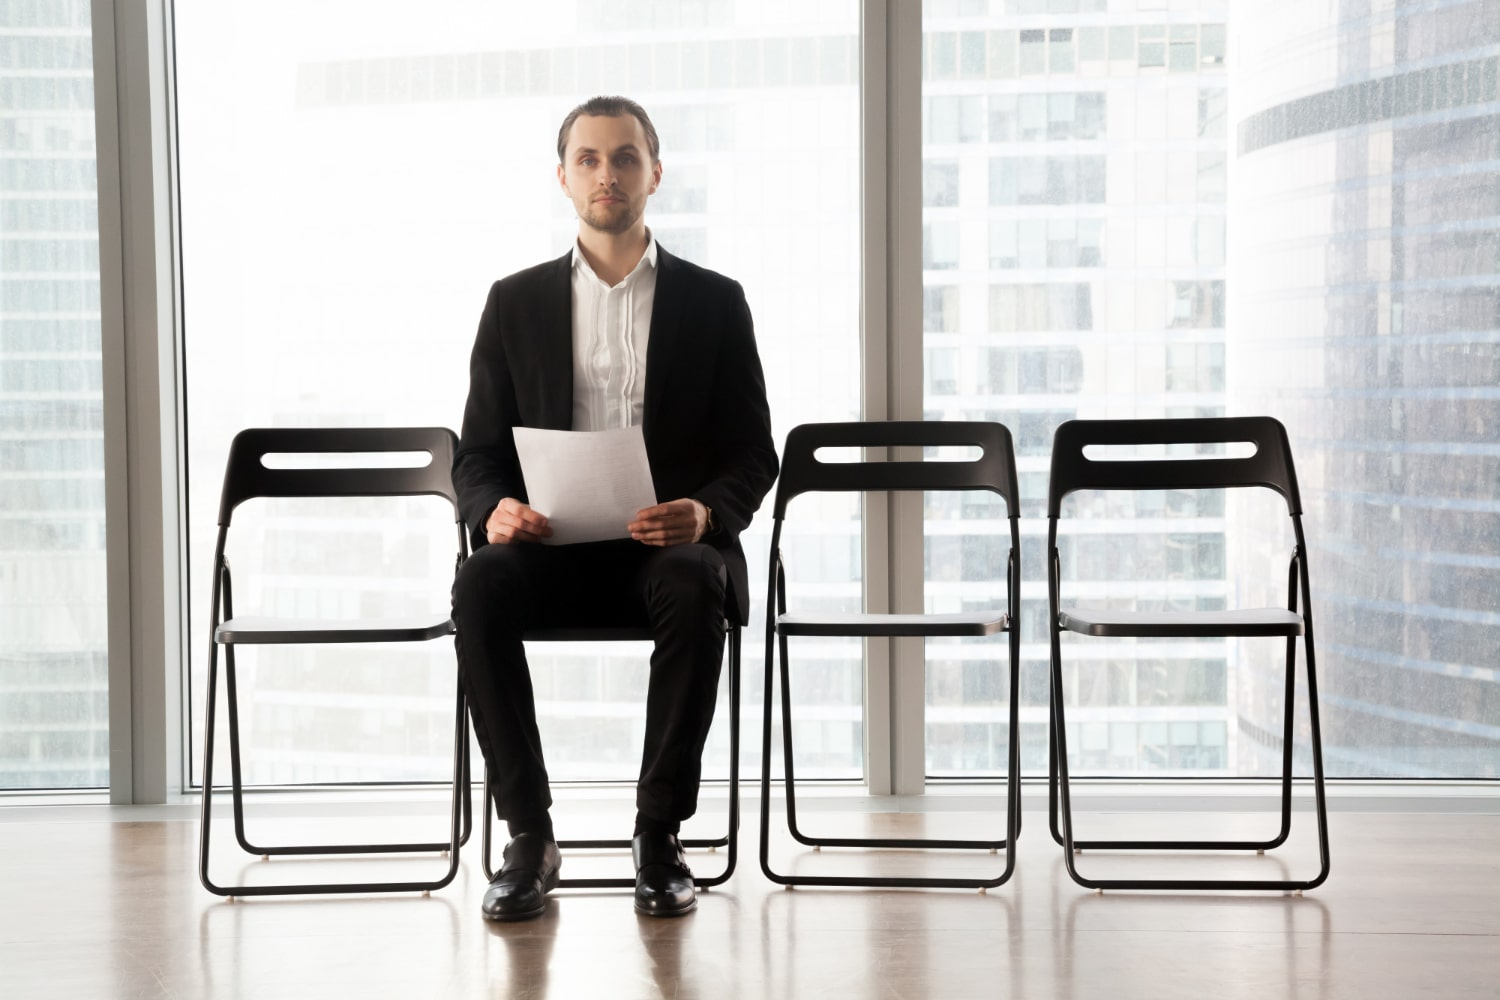 Candidate Waiting For Job Interview